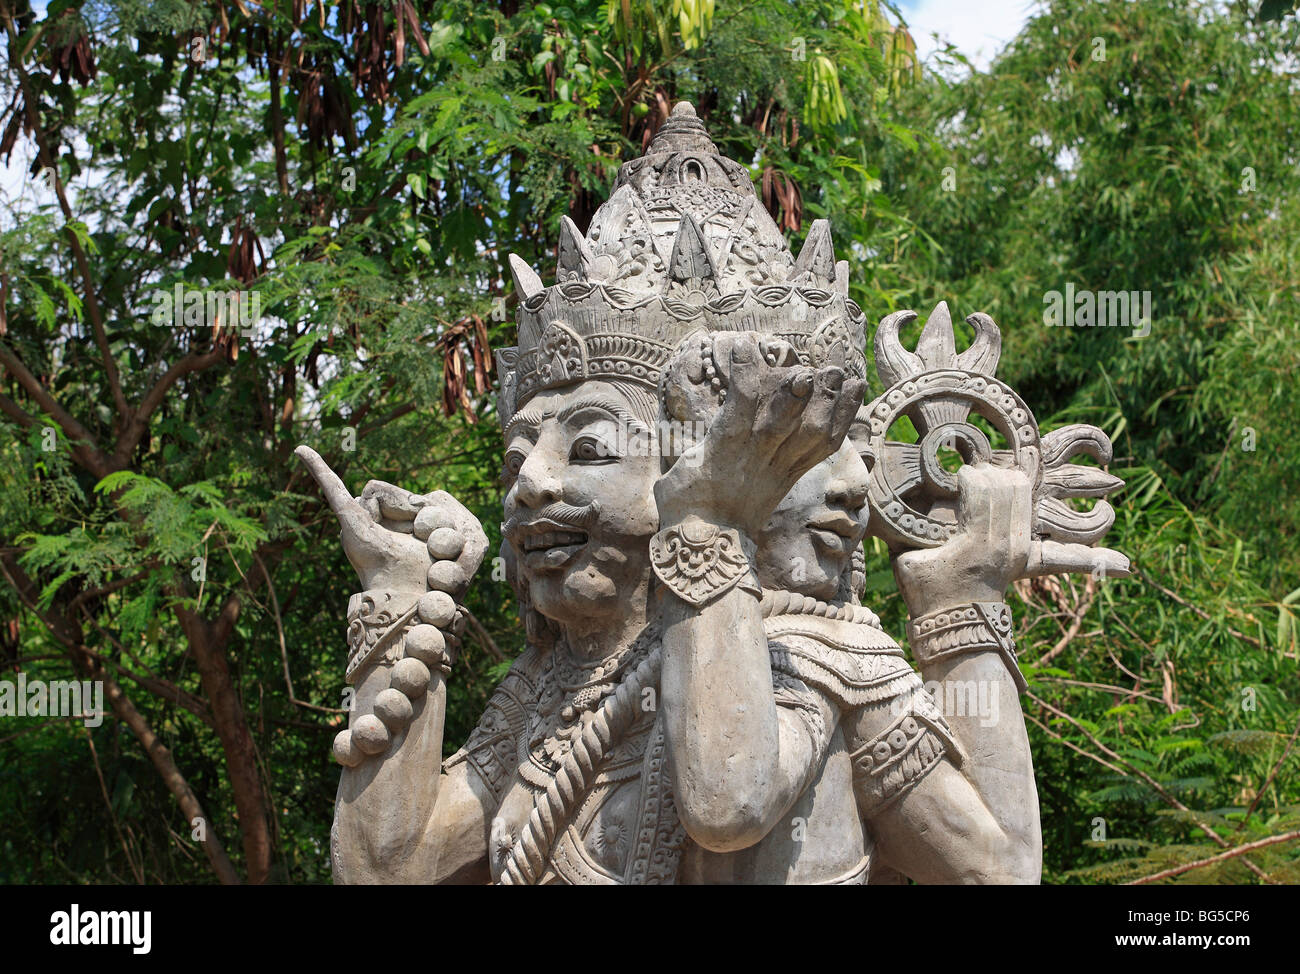 Carved Stone Statue : Carved stone statue stock photos